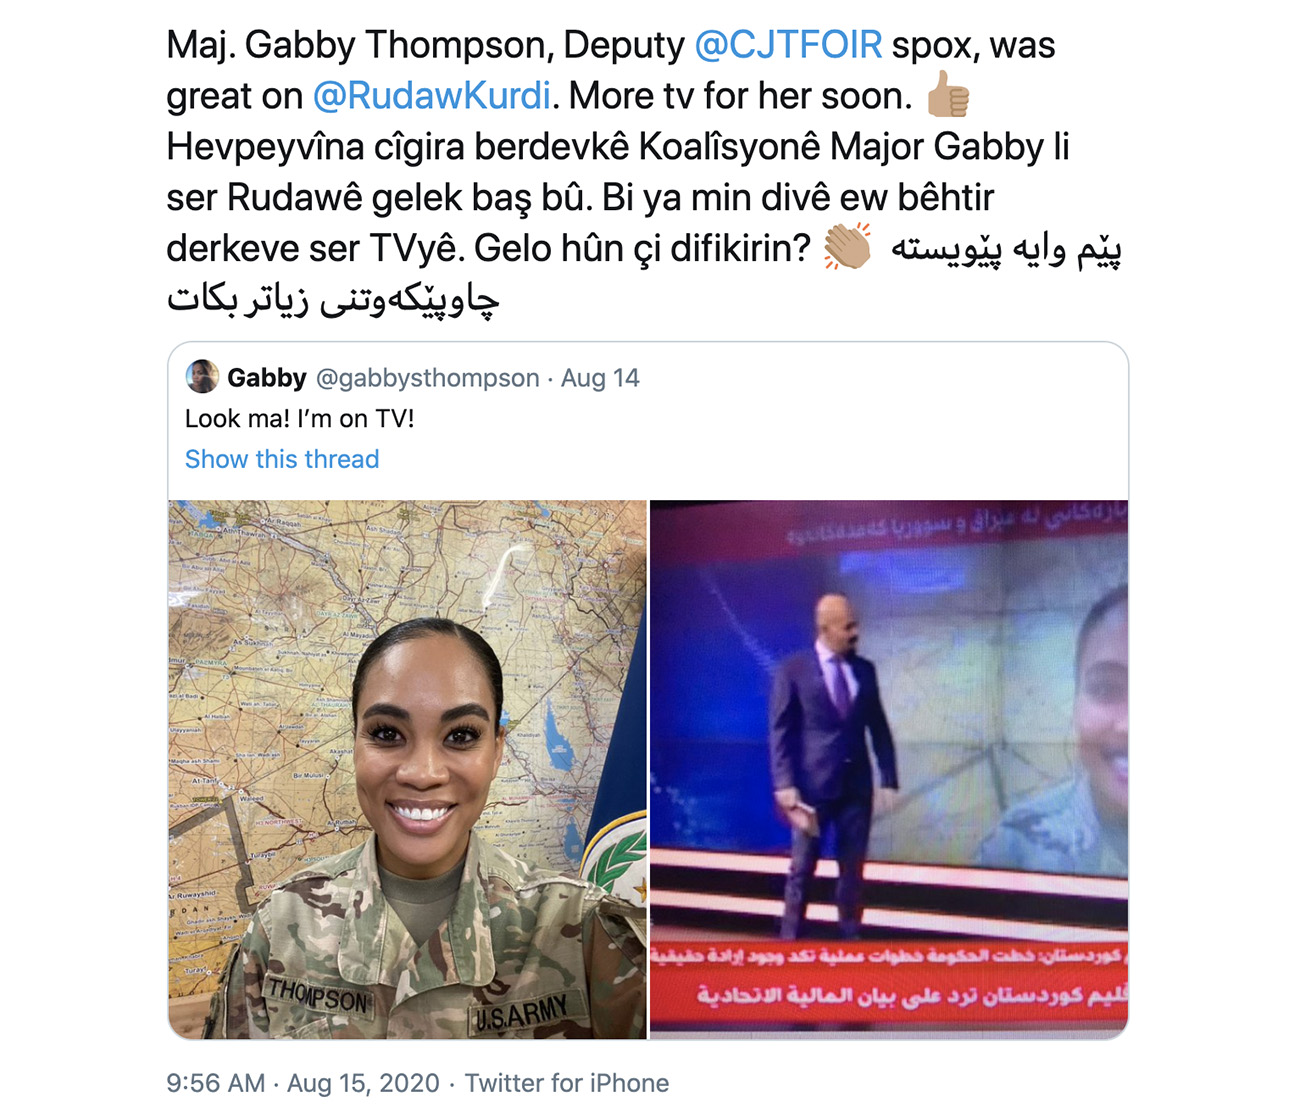 Caggins's tweet introducing his deputy spokesperson, Maj. Gabby Thompson, with a tweet in English, Arabic, and Kurdish.